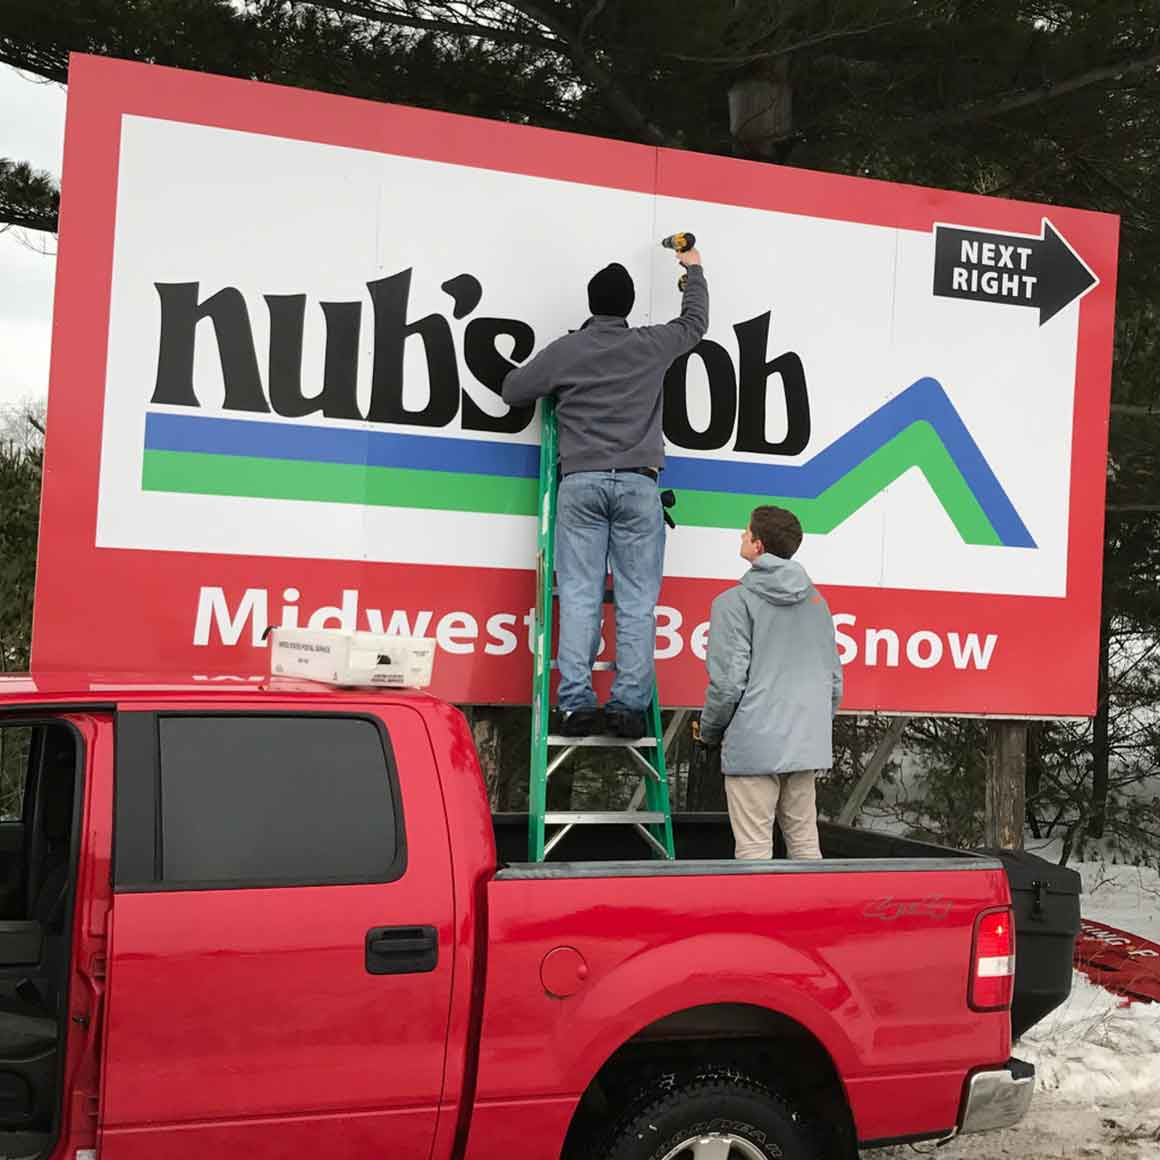 nubs nob billboard sign